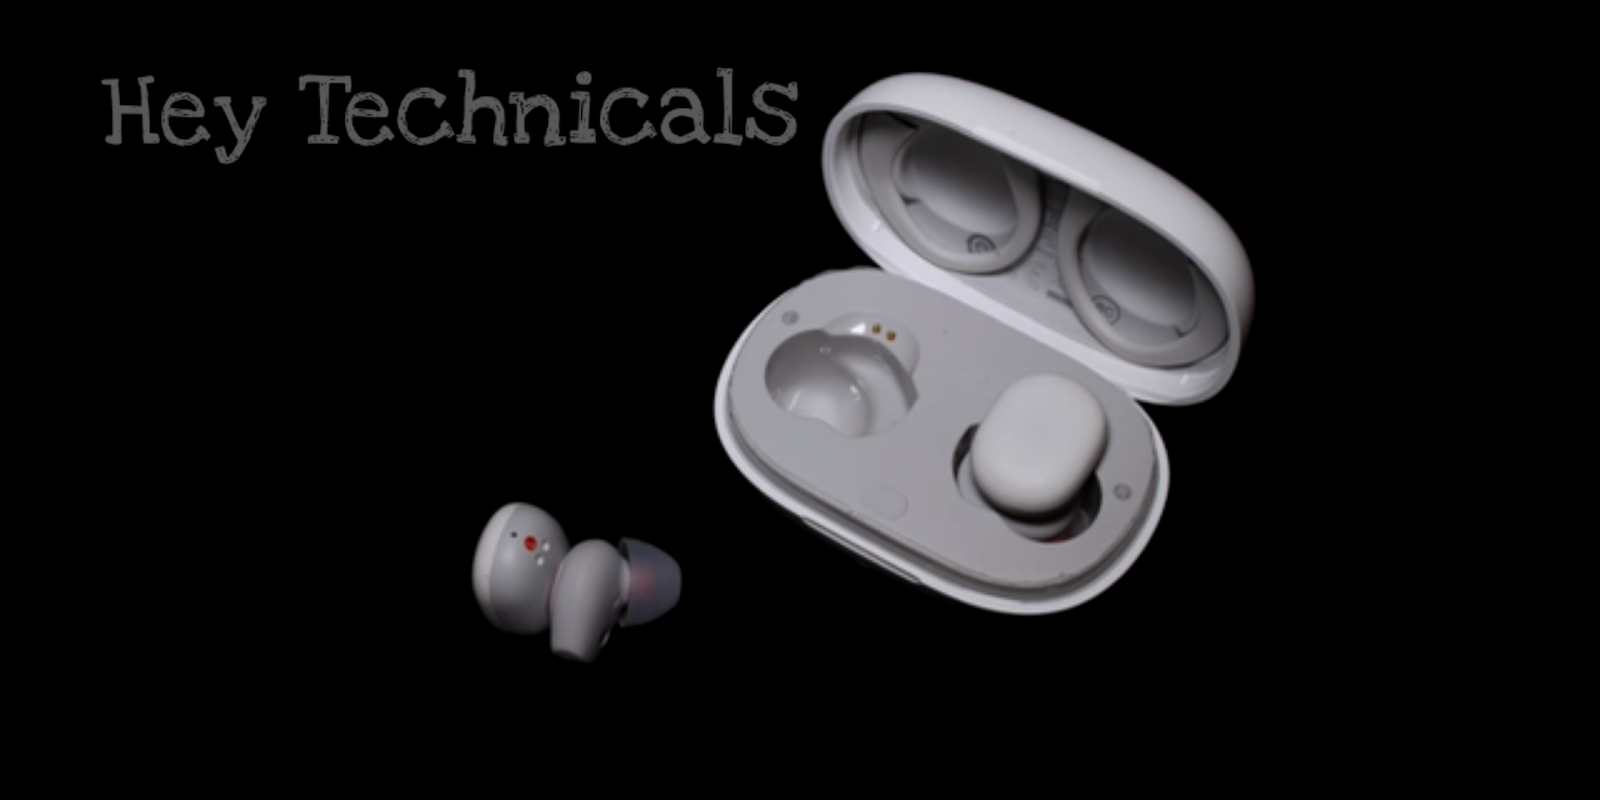 THE AMAZFIT EARBUDS